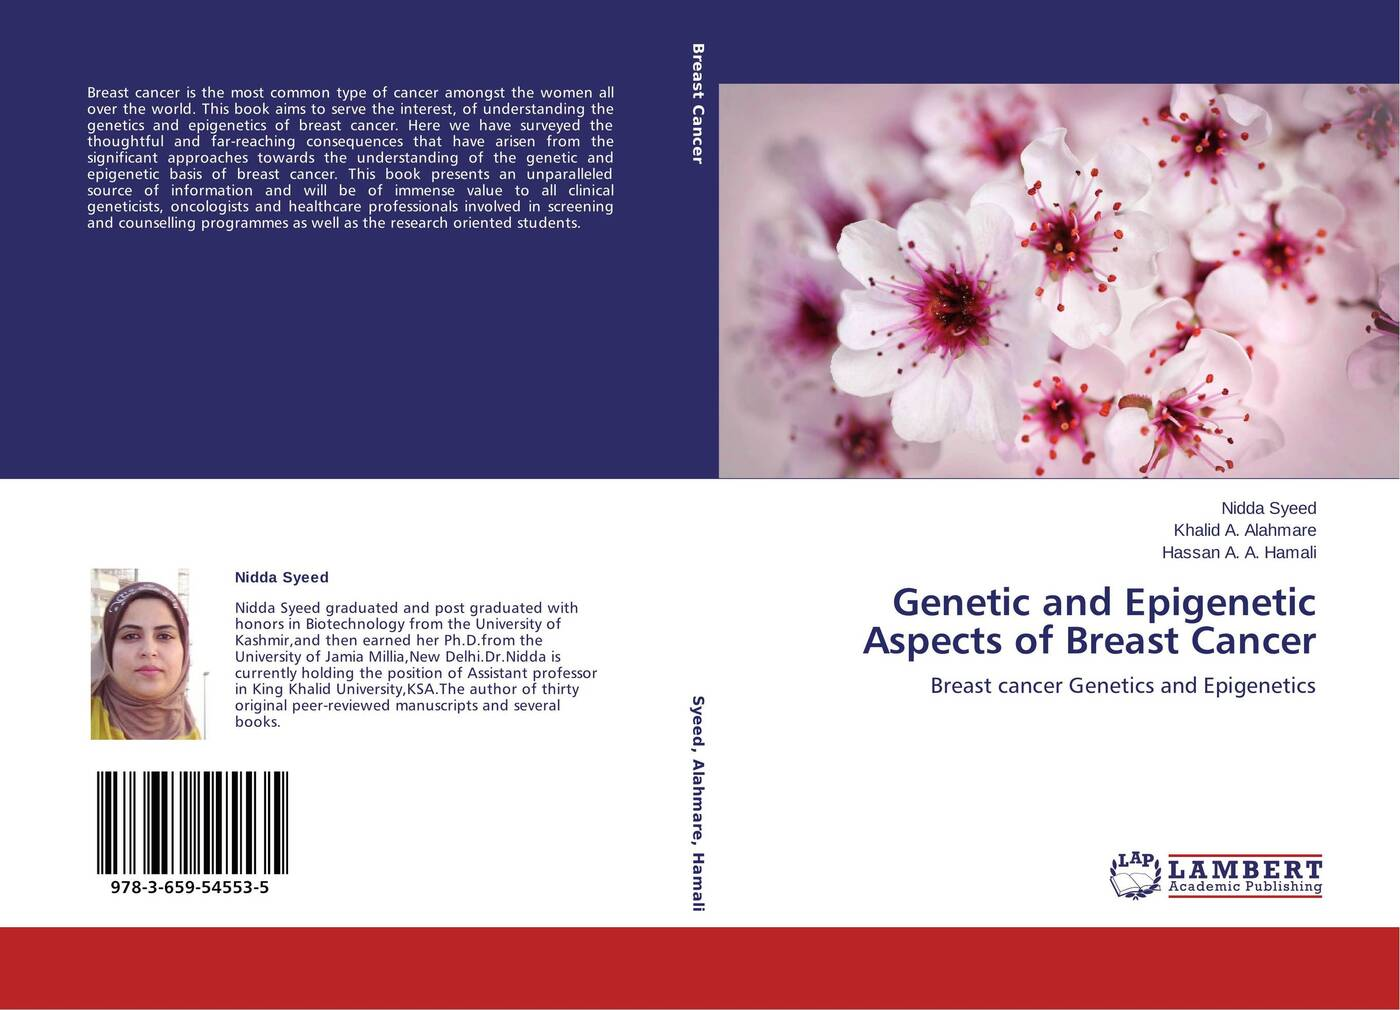 цены Nidda Syeed,Khalid A. Alahmare and Hassan A. A. Hamali Genetic and Epigenetic Aspects of Breast Cancer